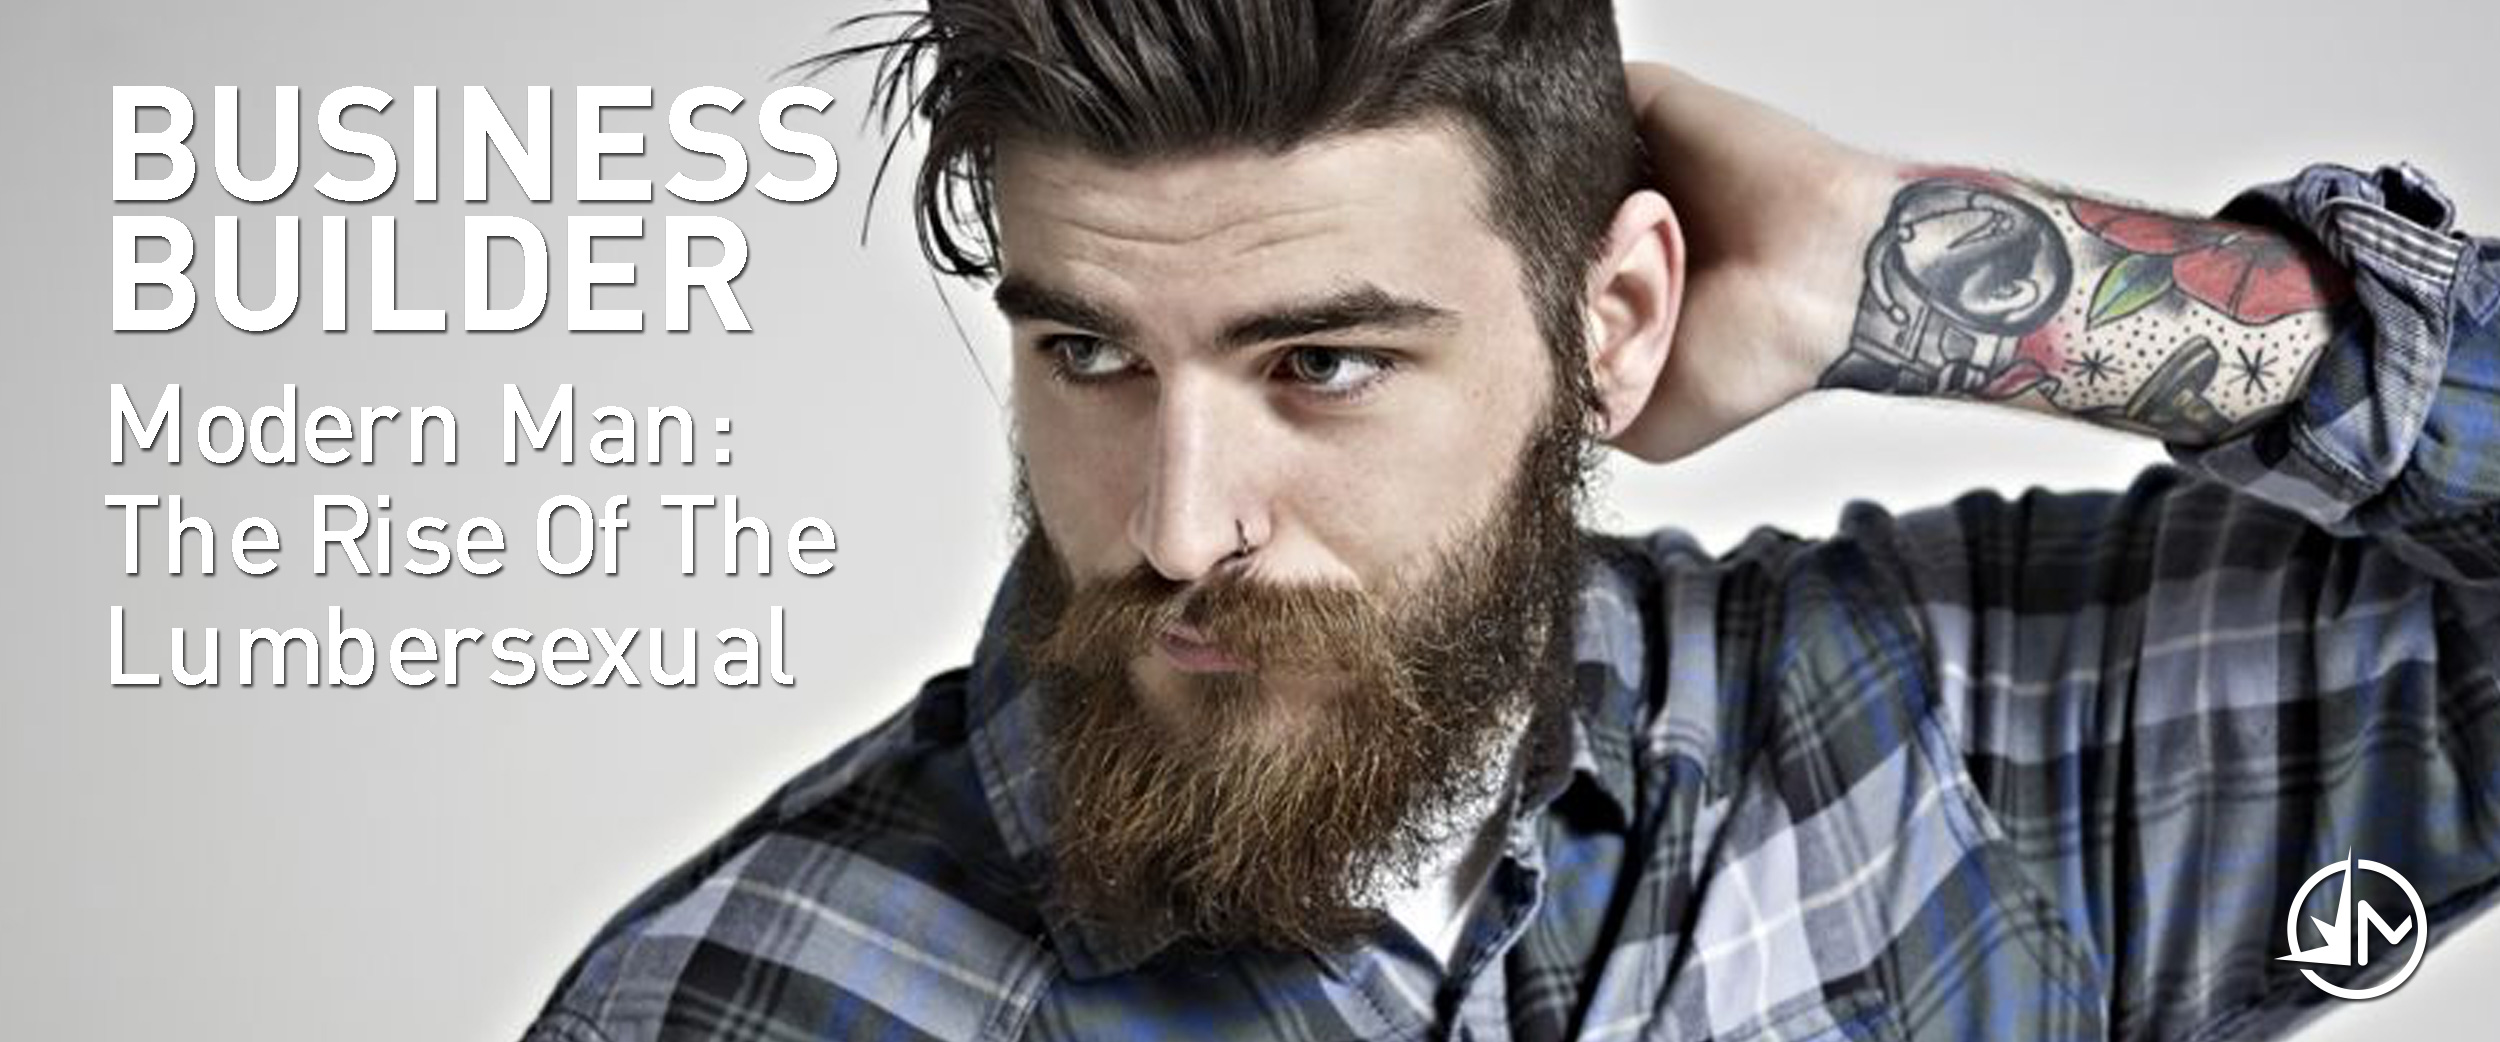 Lumbersexual meaning